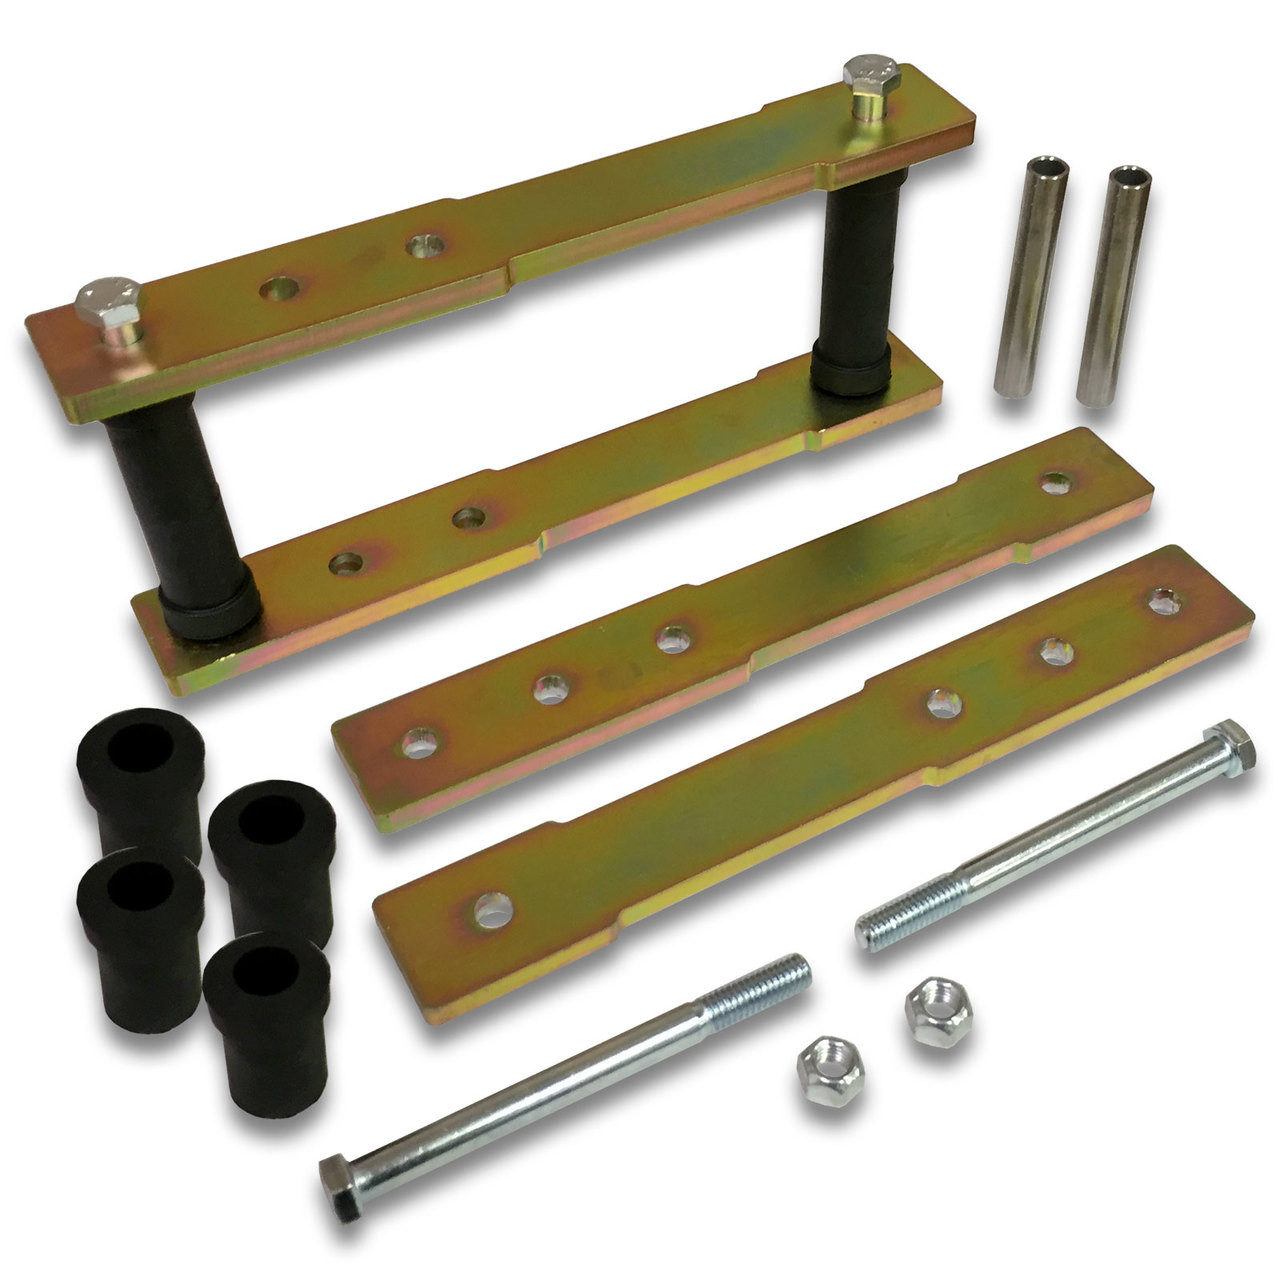 "Part Number SK-5005 - 1"" to 4"" Rear Shackle Lift Kit for 1960's thru 1970's Mopar A-Body 